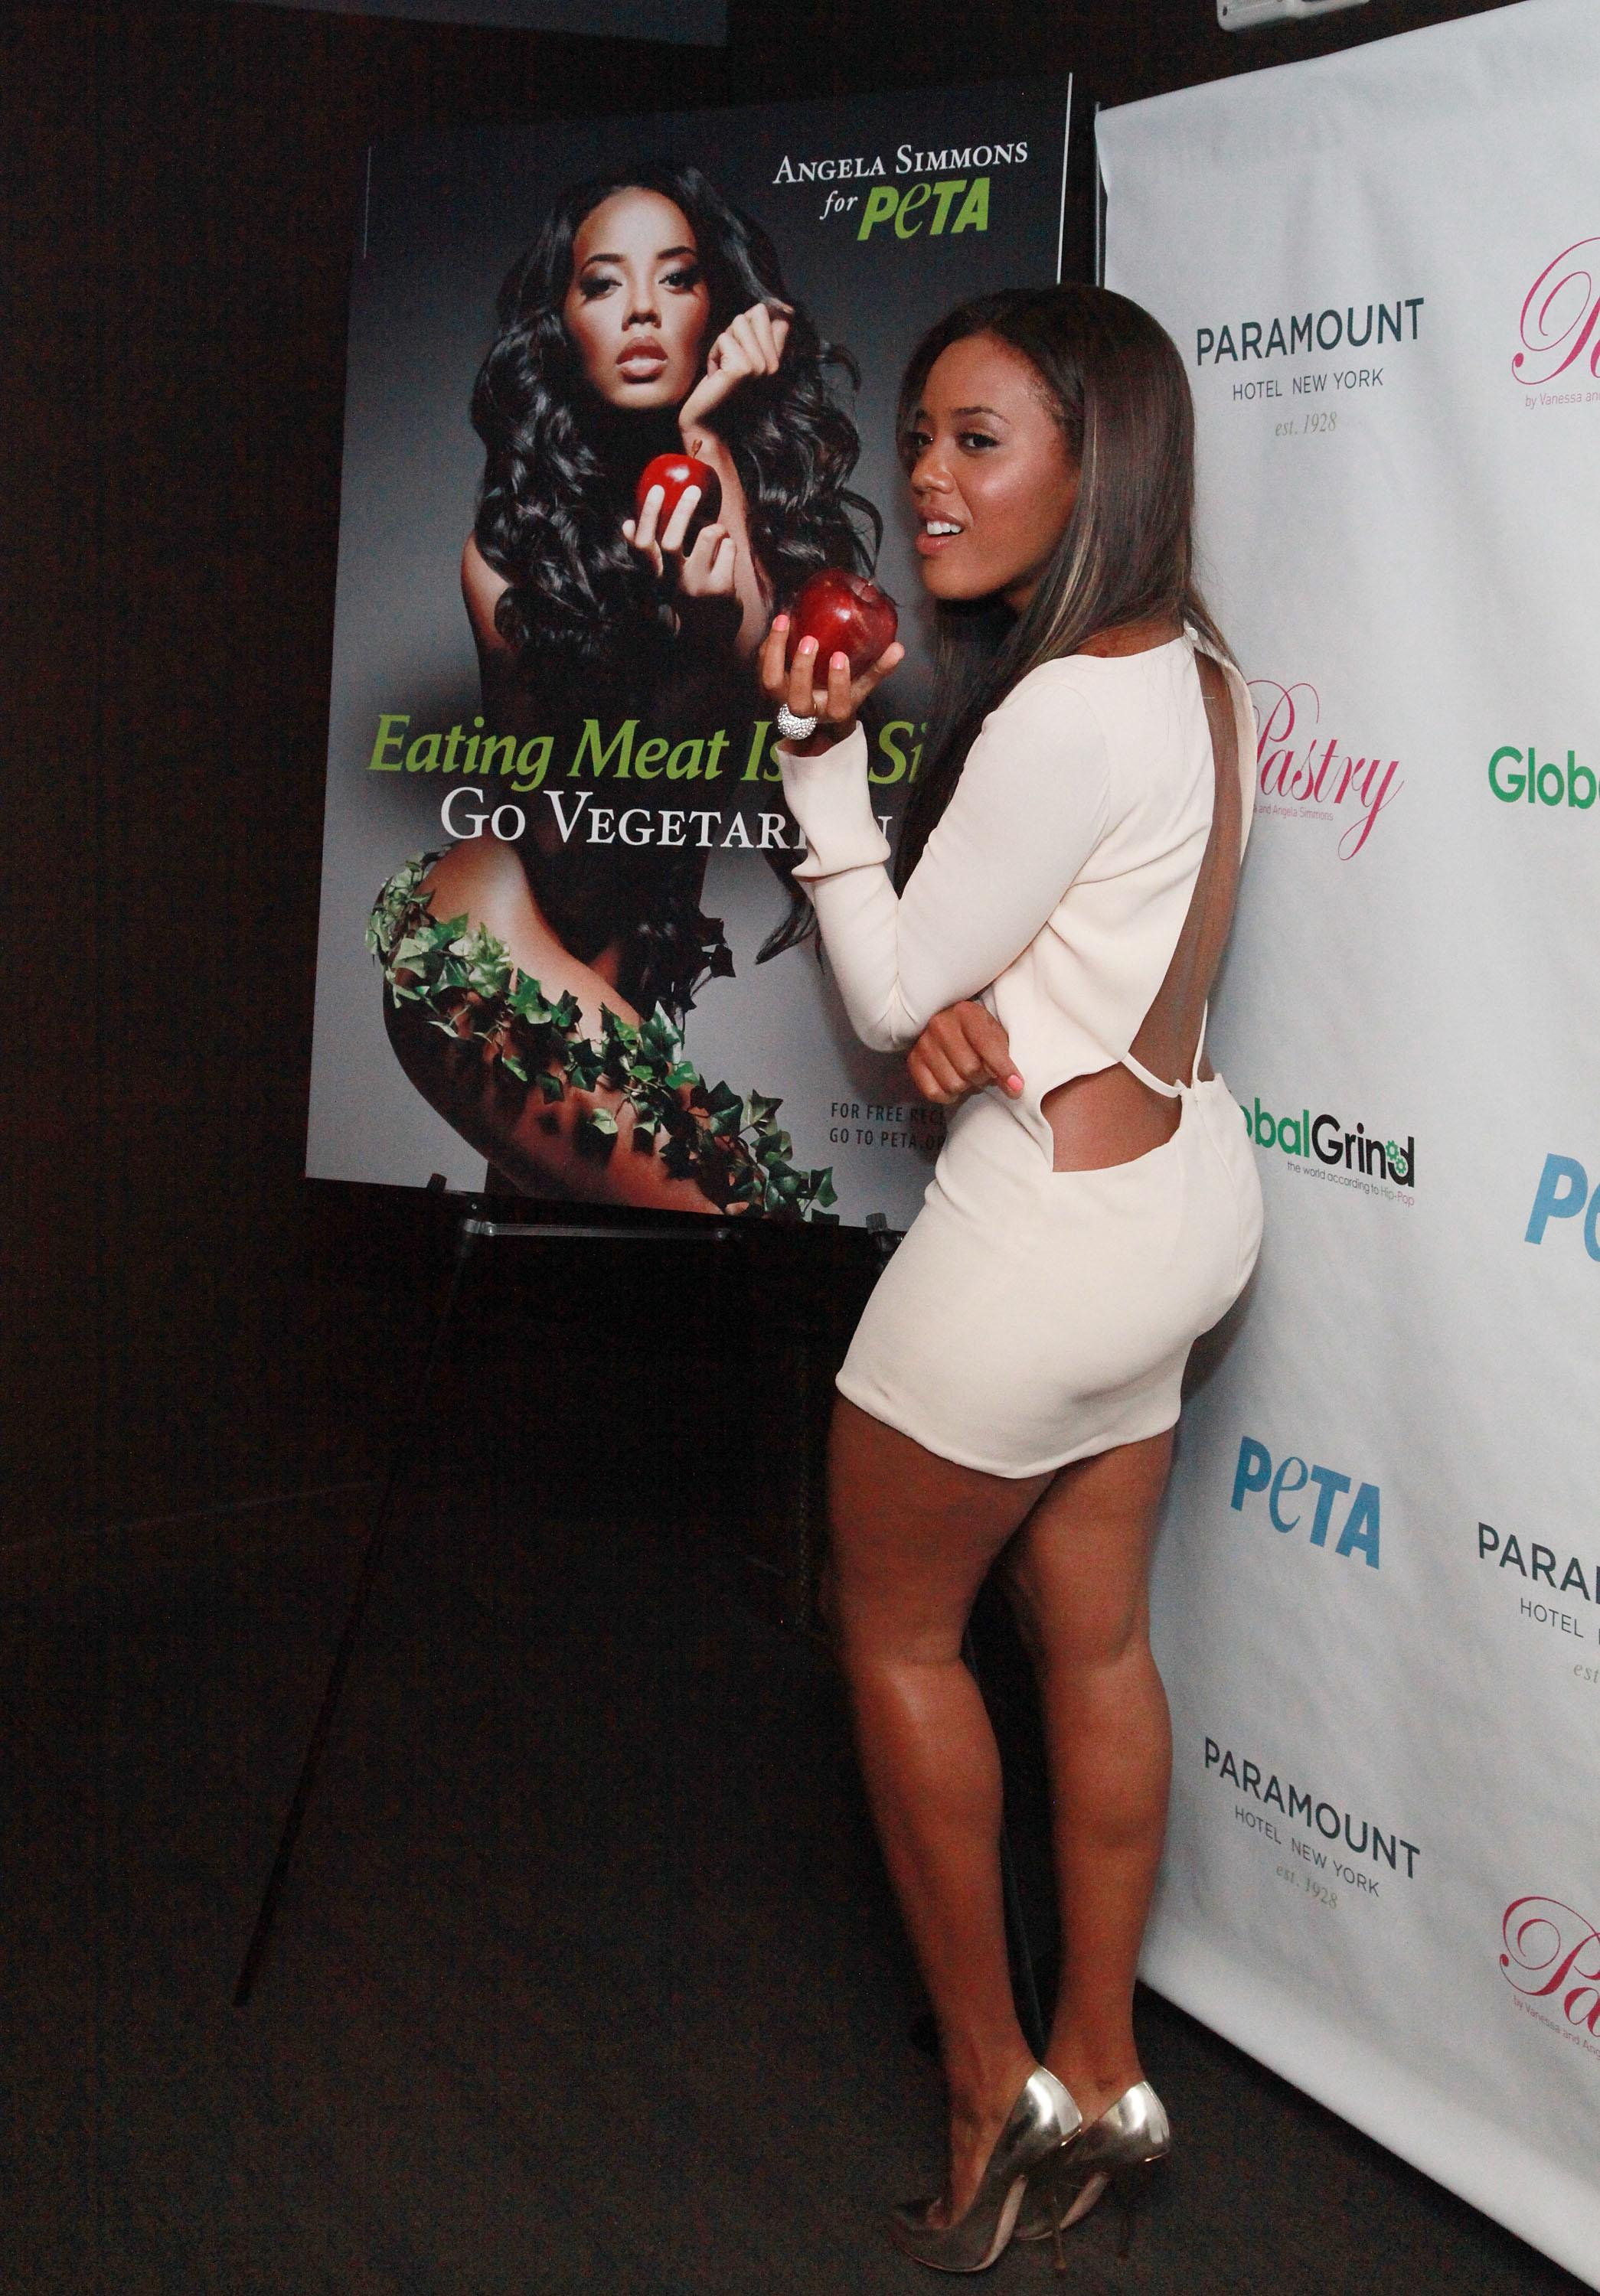 Angela Simmons' PETA Campaign Unveiling